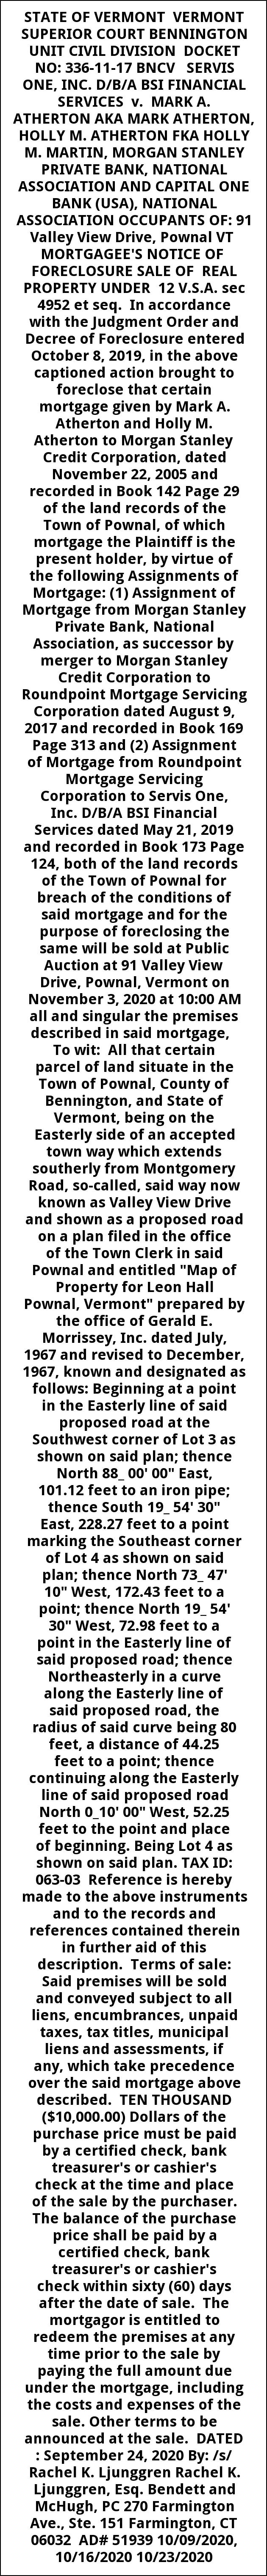 Notice Of Foreclosure Sale of Real Property